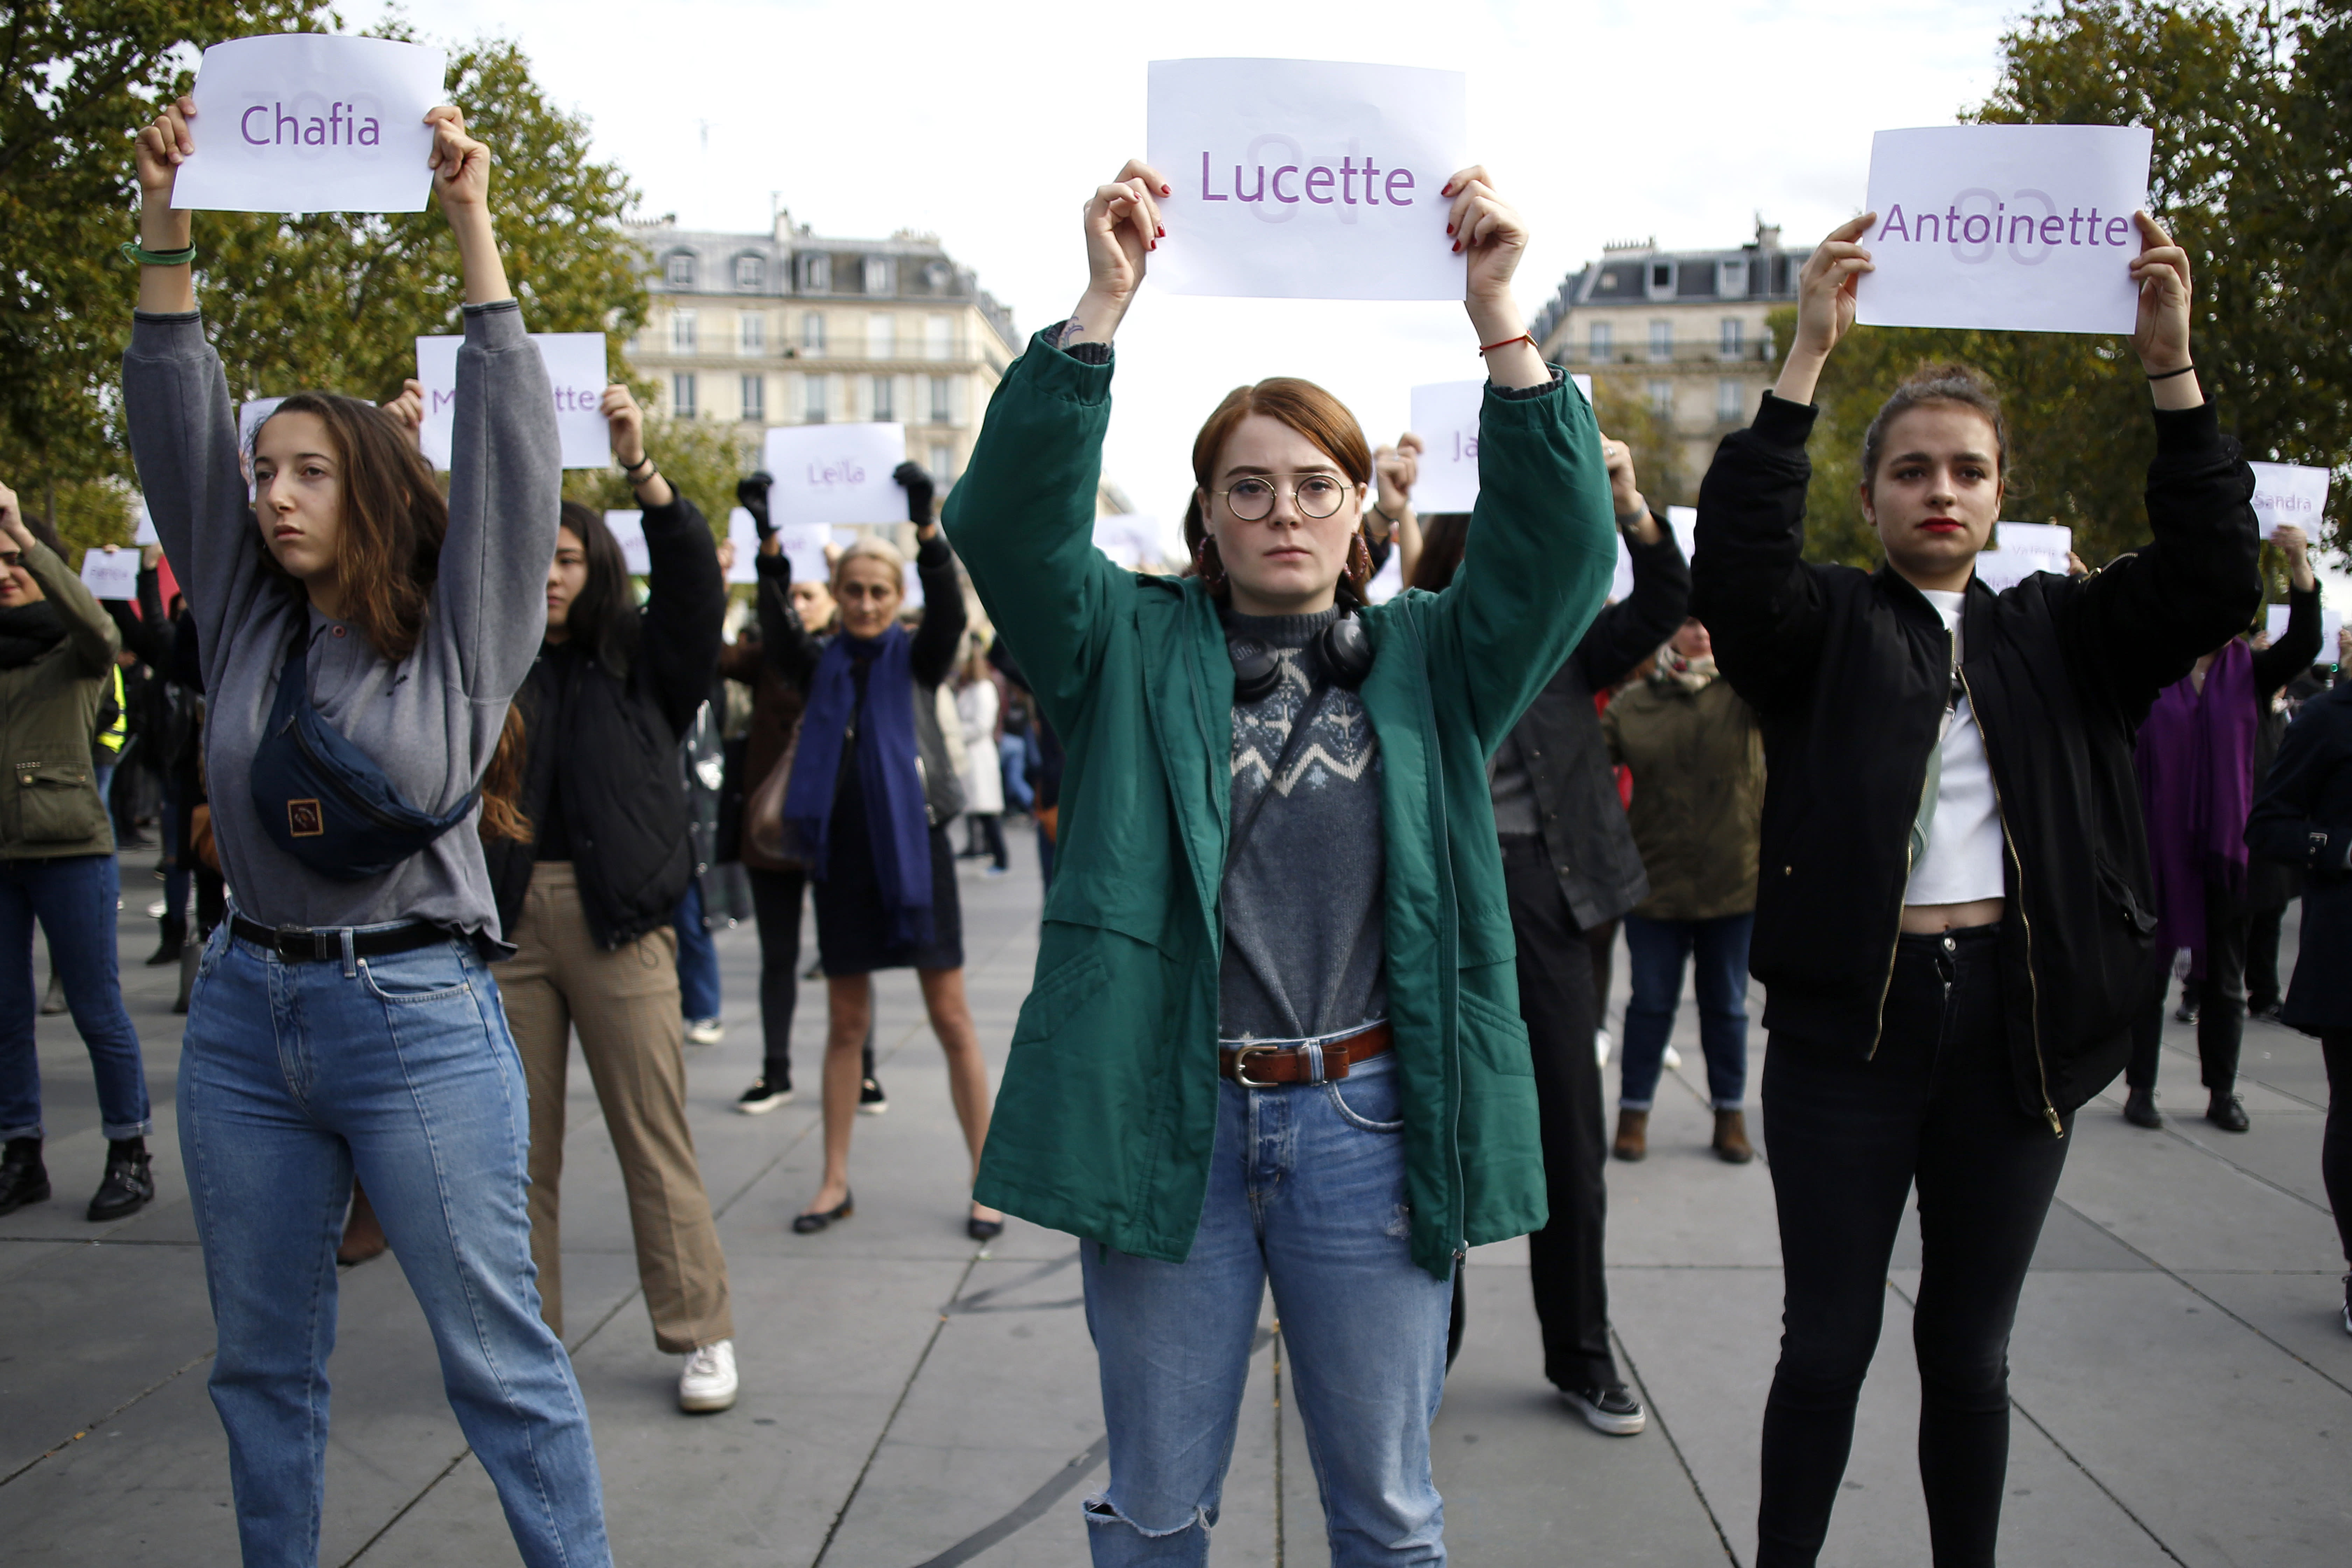 FILE - In this Oct.19, 2019 file photo, women hold placards with the names of women killed by their partners, during a protest, in Paris. A French government commission examining domestic violence is recommending that authorities now confiscate firearms from individuals following the first complaint of family violence levied against them. In France, a woman is killed by her partner every three days, according to government statistics. (AP Photo/Thibault Camus, File)